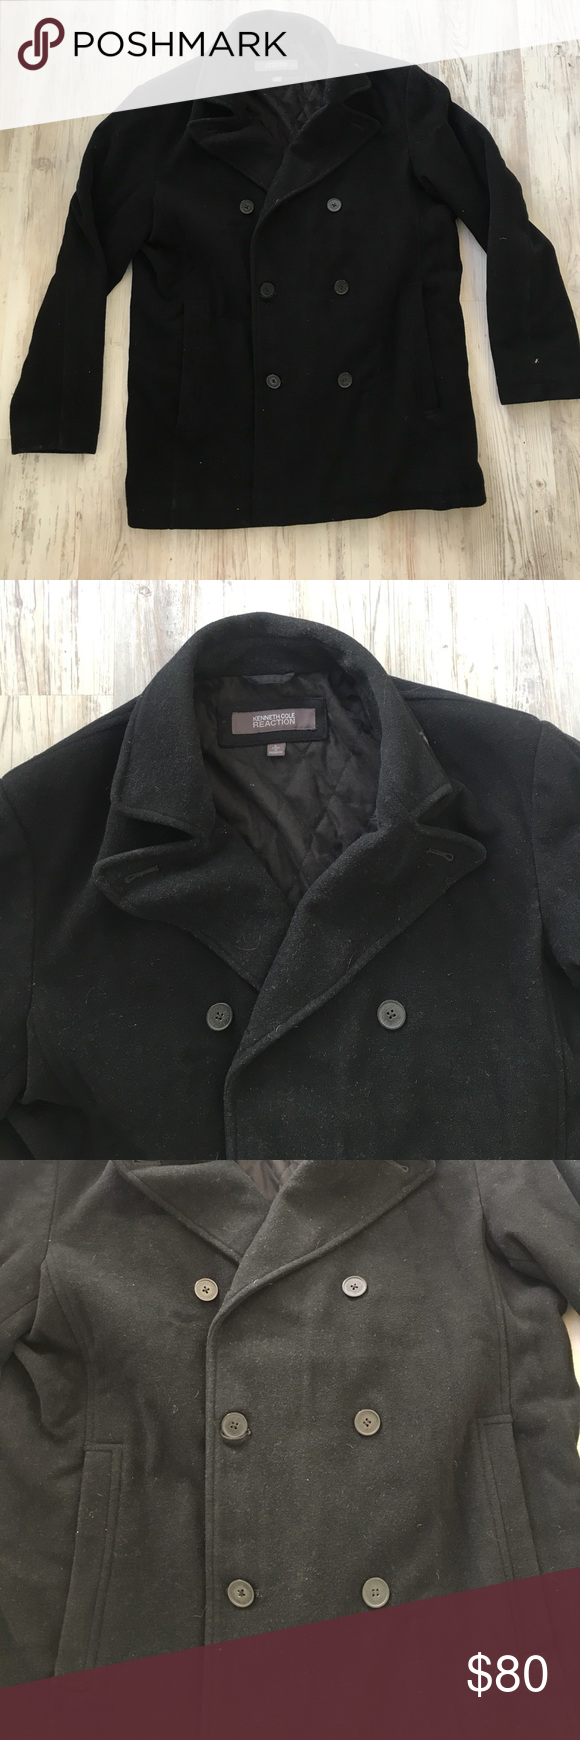 Kenneth cole reaction pea coat double breasted button all black size